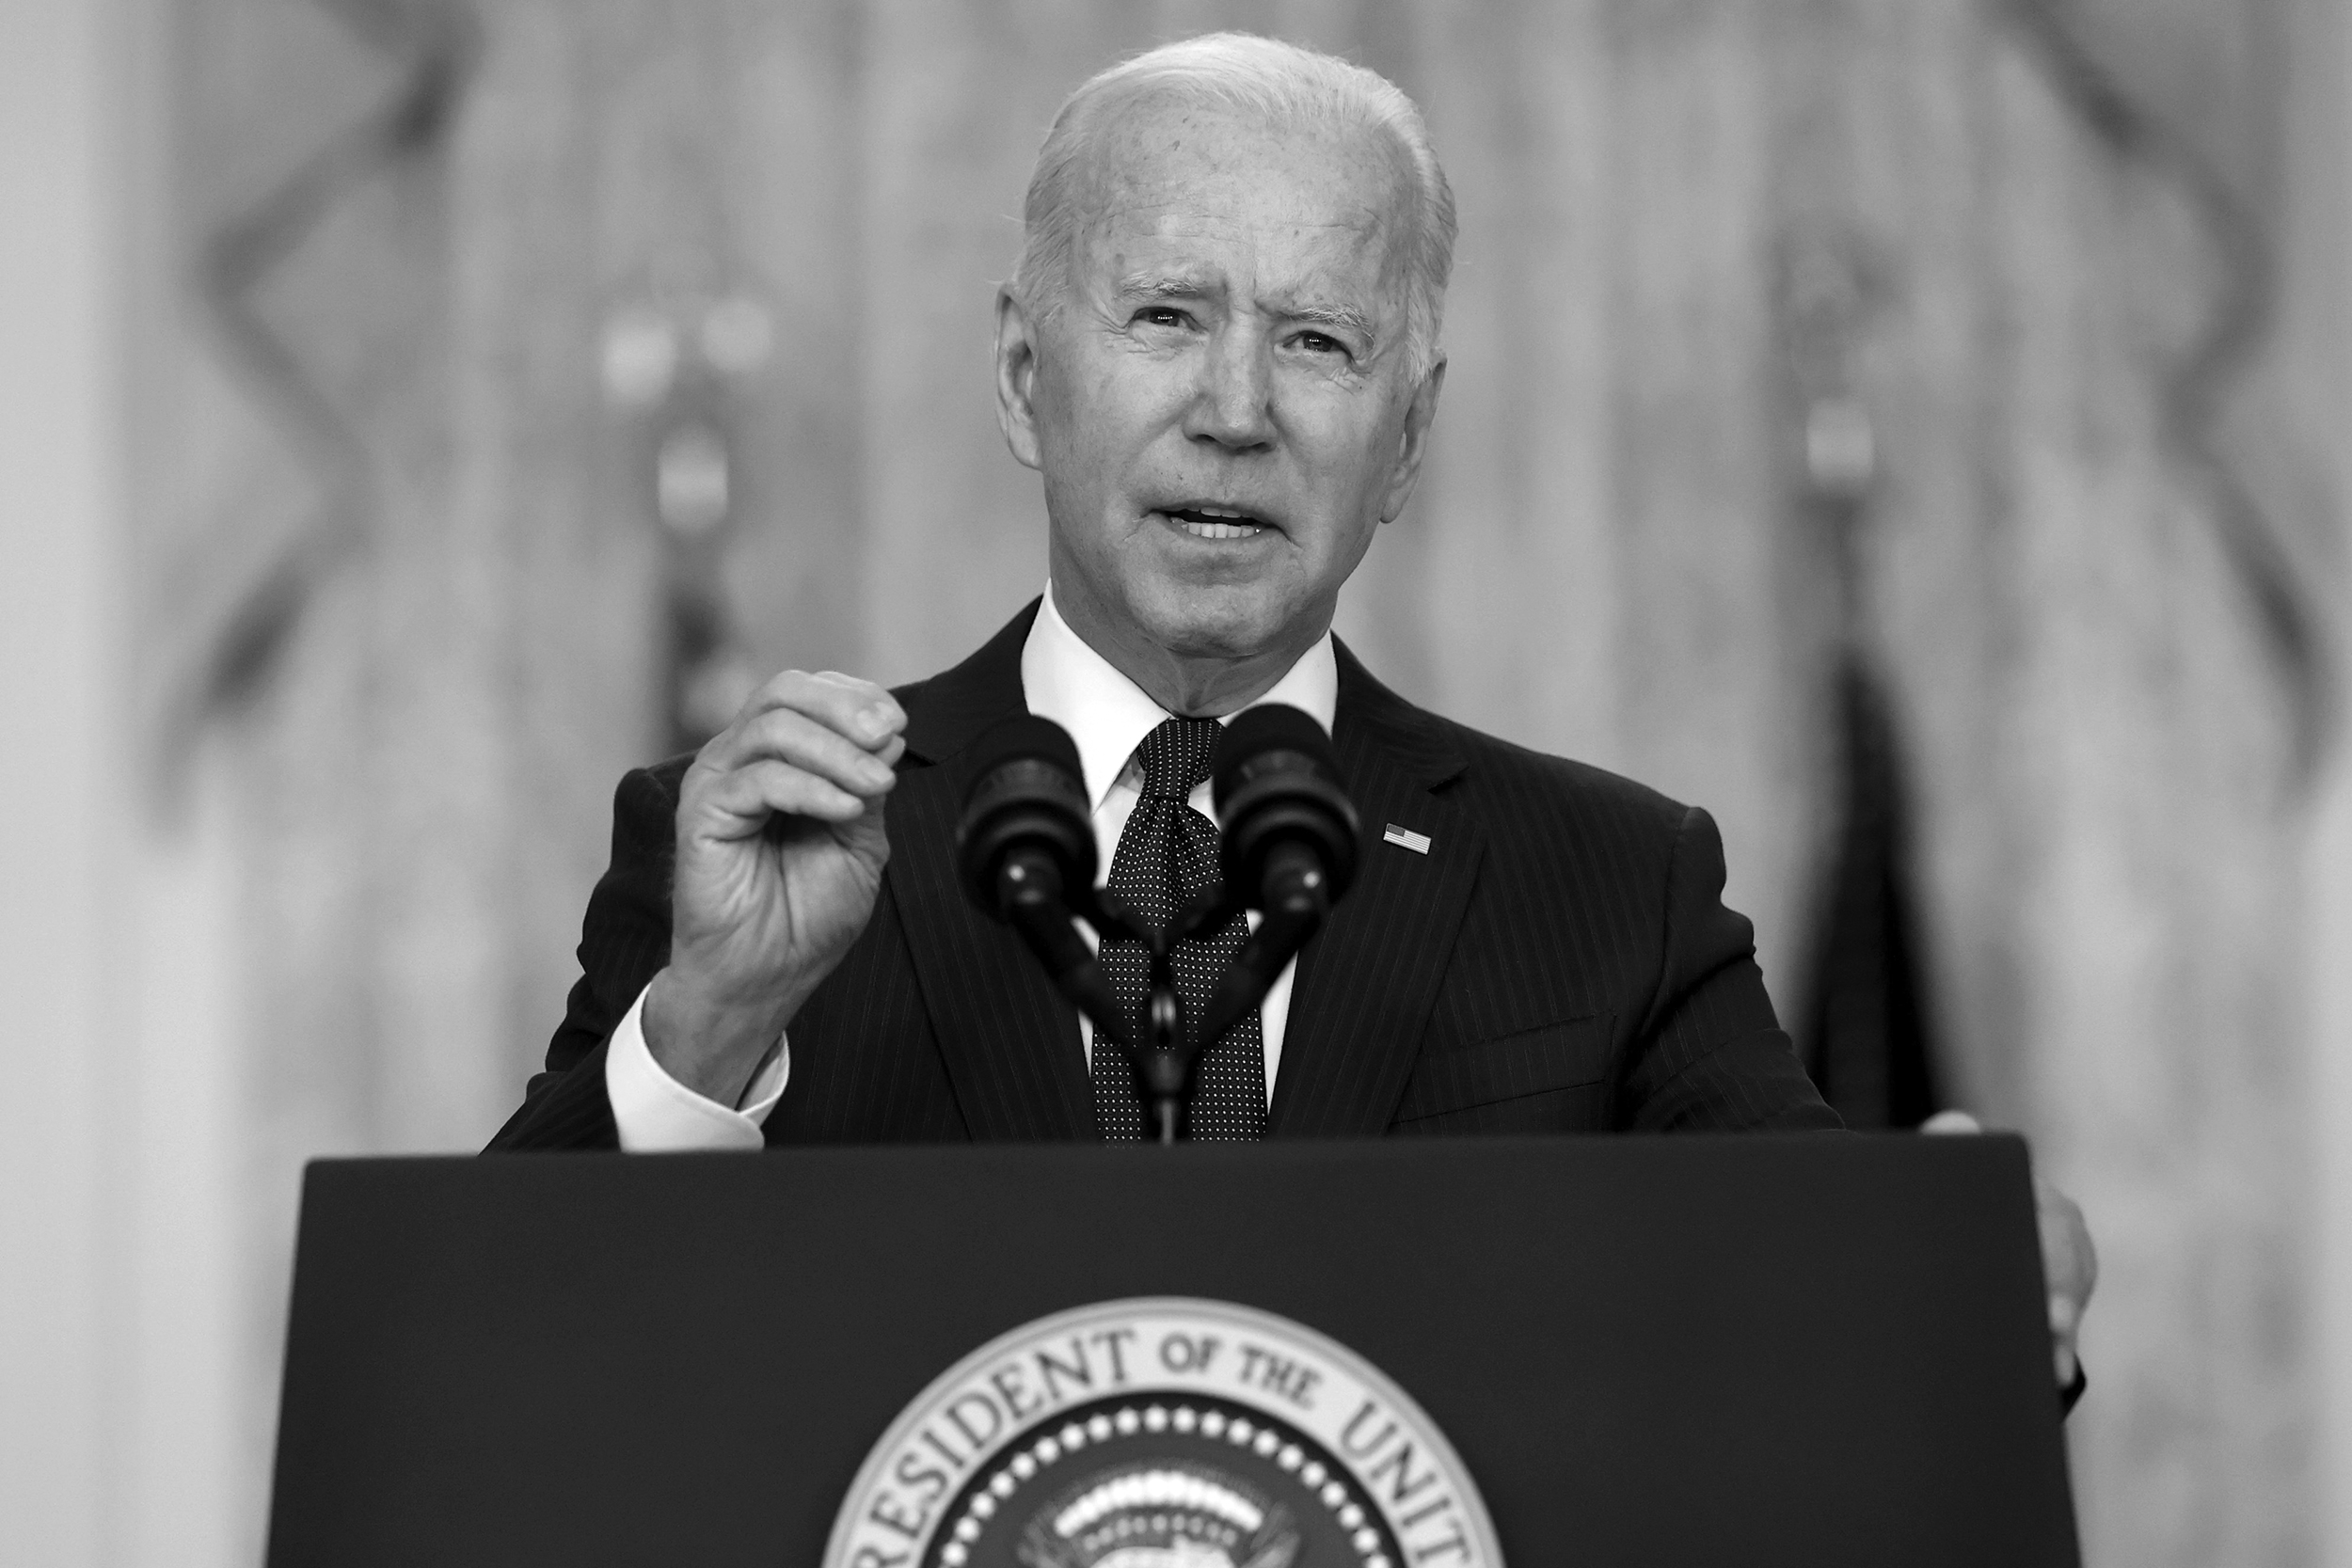 Biden's promise: To kill enemies, extract civilians with no ground force